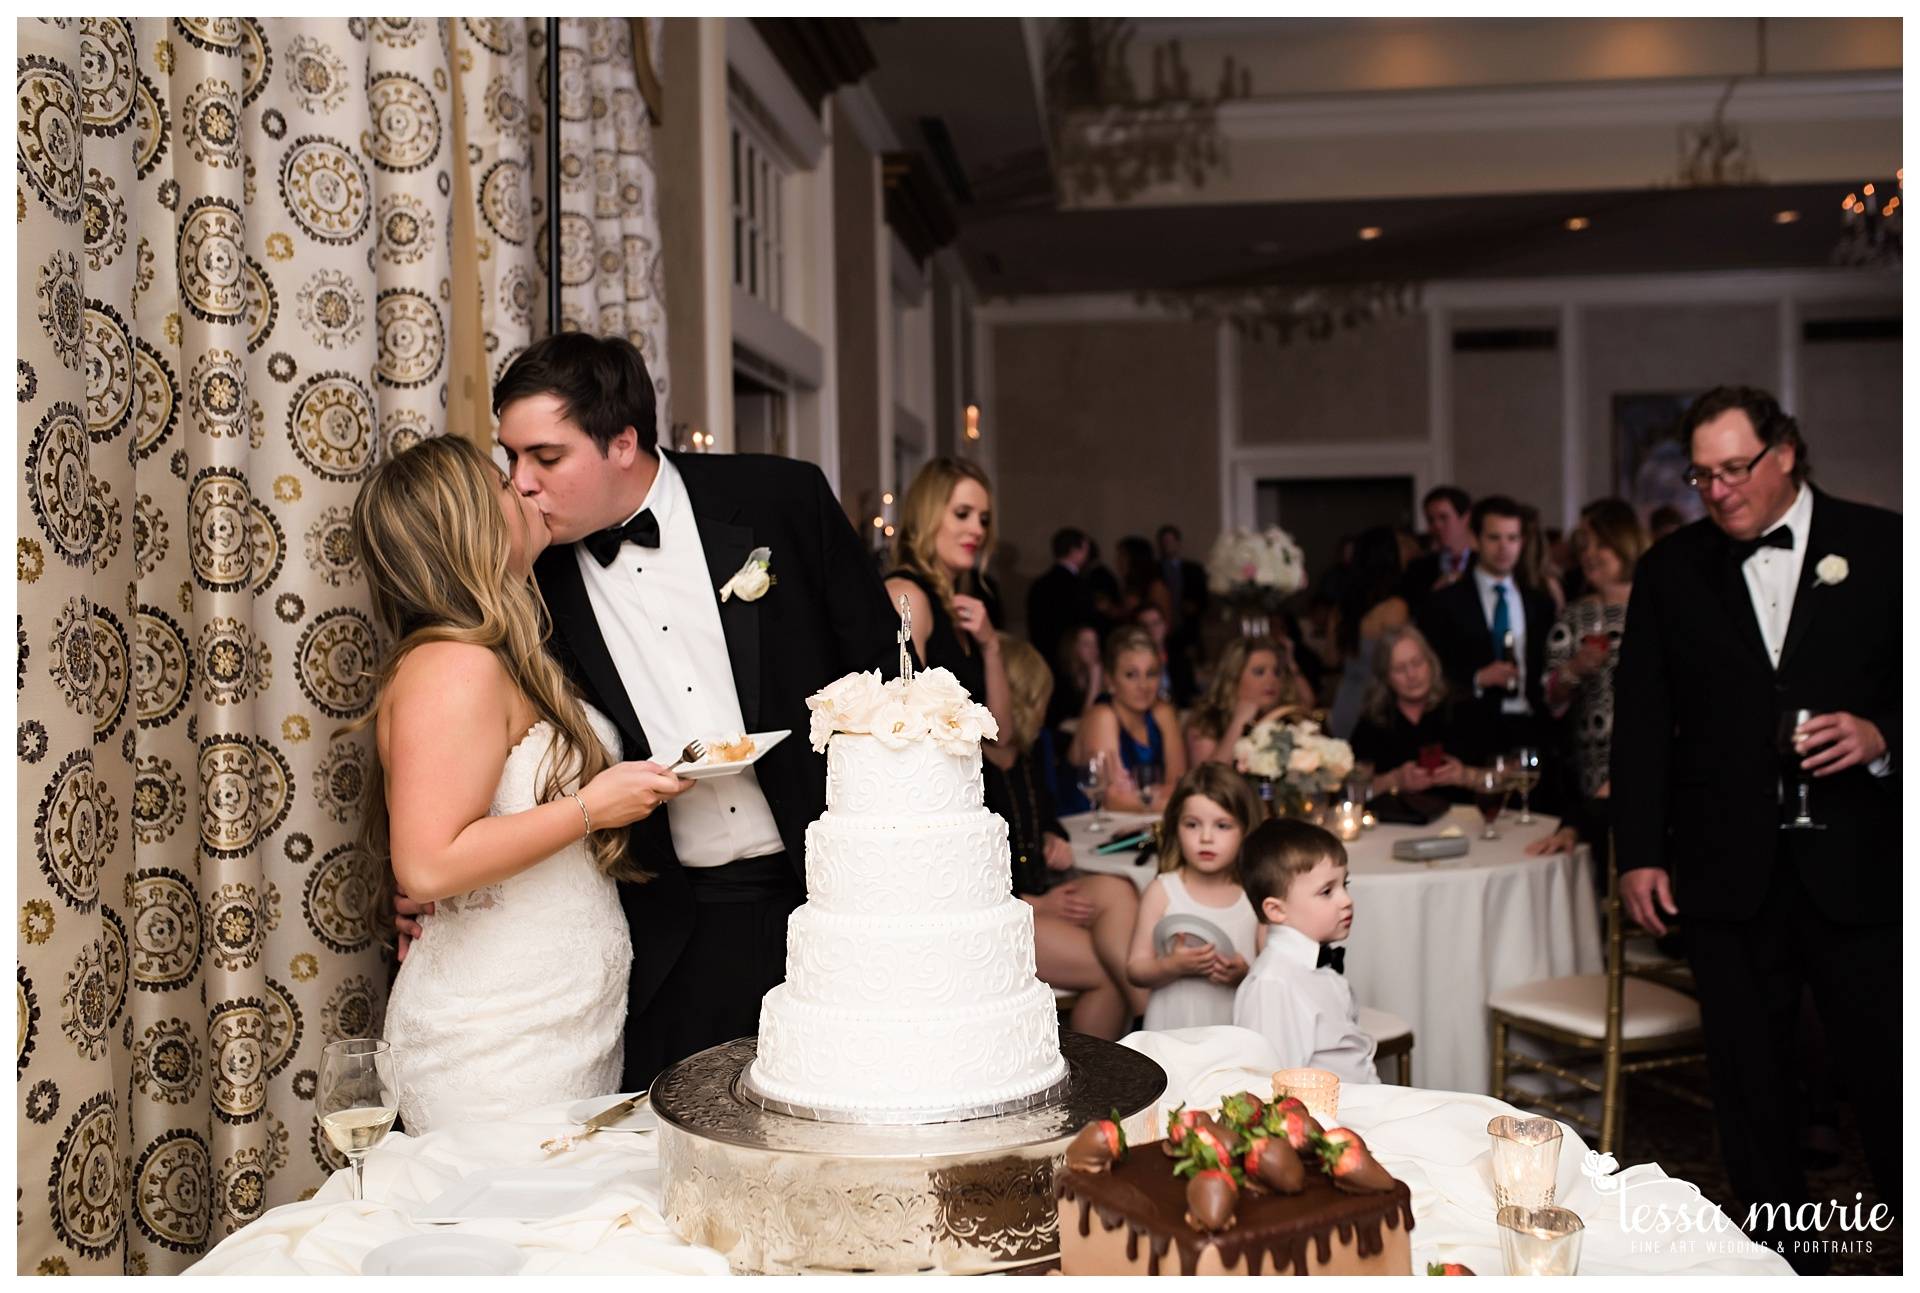 tessa_marie_weddings_legacy_story_focused_wedding_pictures_atlanta_wedding_photographer_0155